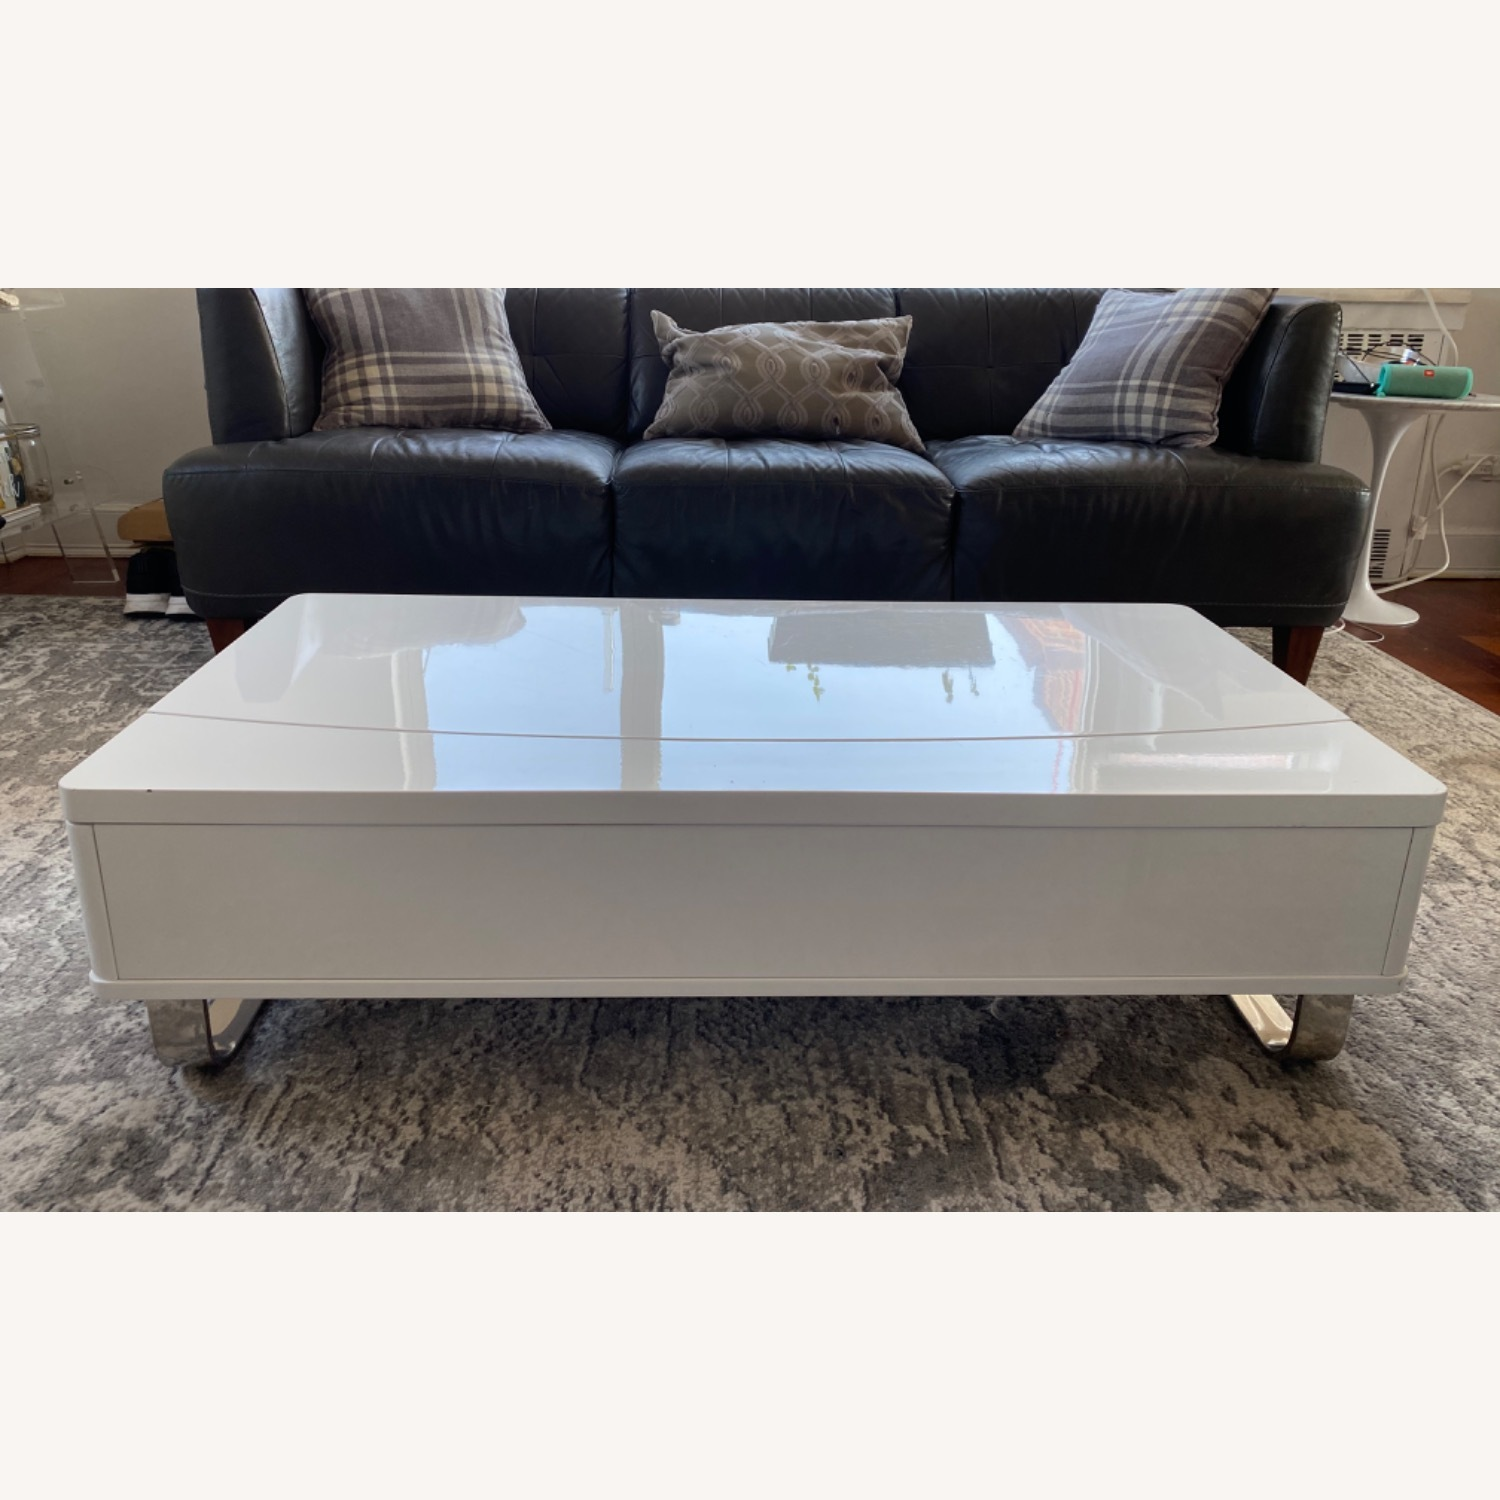 White Lacquer Lift Top Coffee Table - image-2